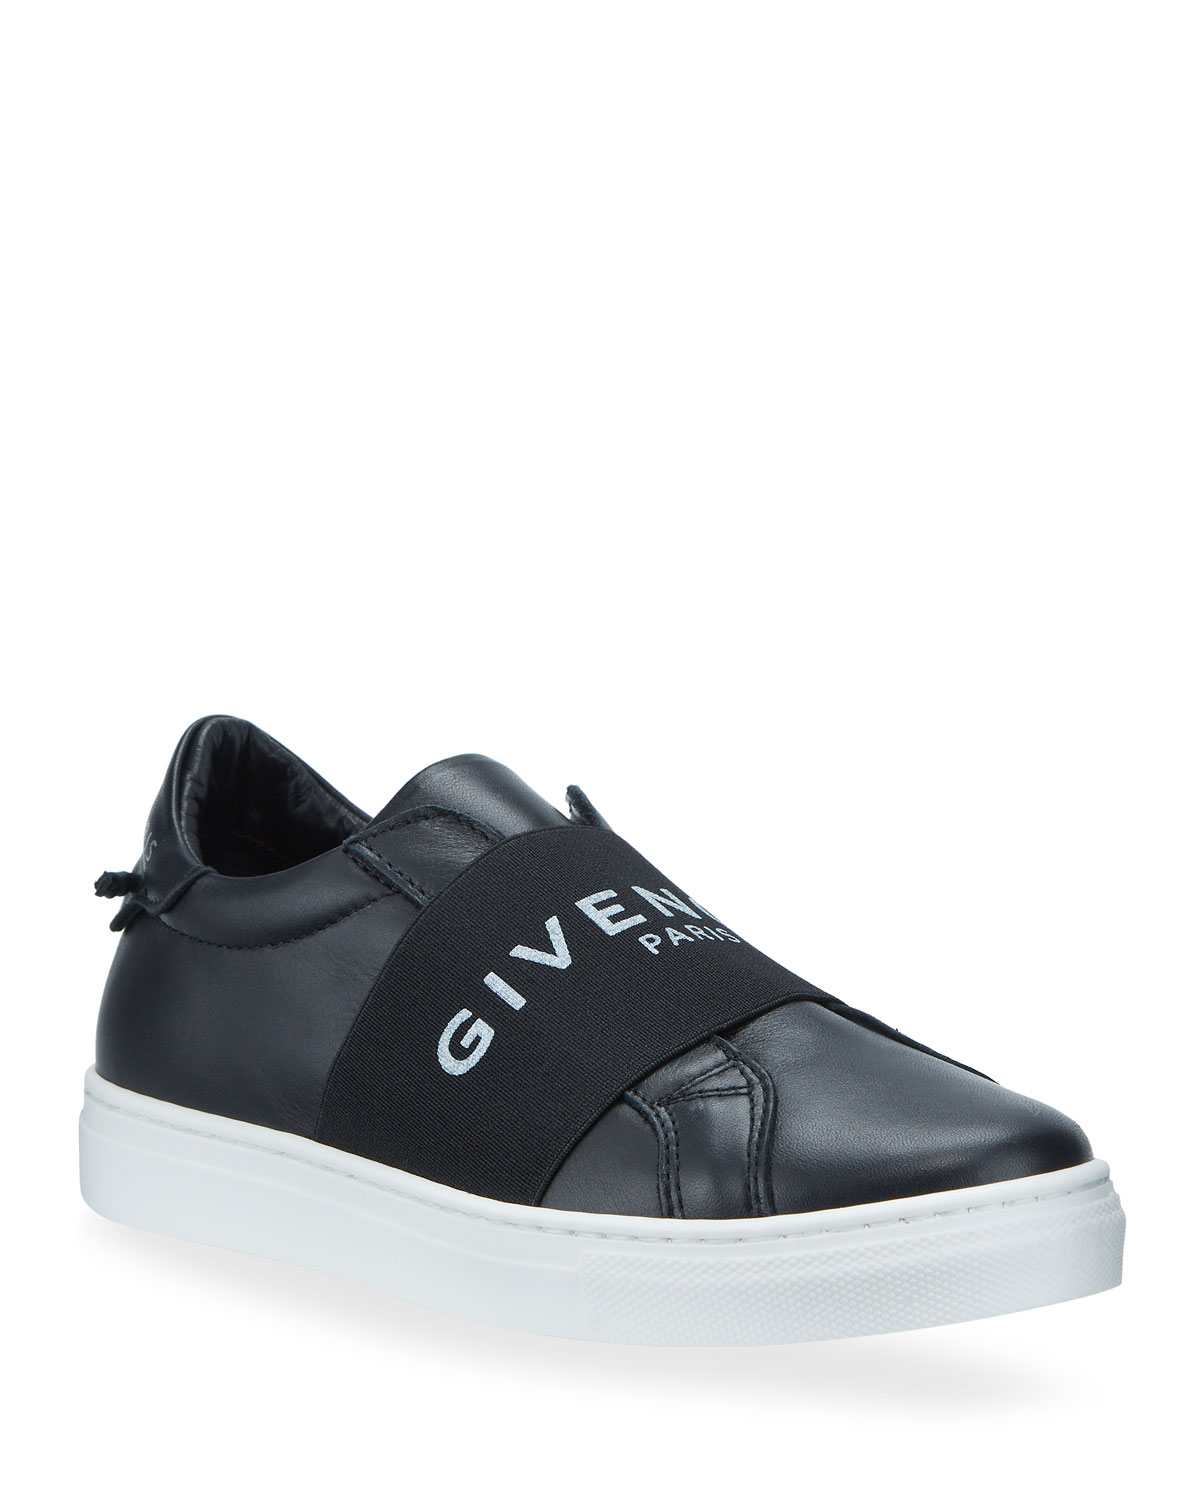 Givenchy Sneakers URBAN STREET LOGO SNEAKERS, TODDLER